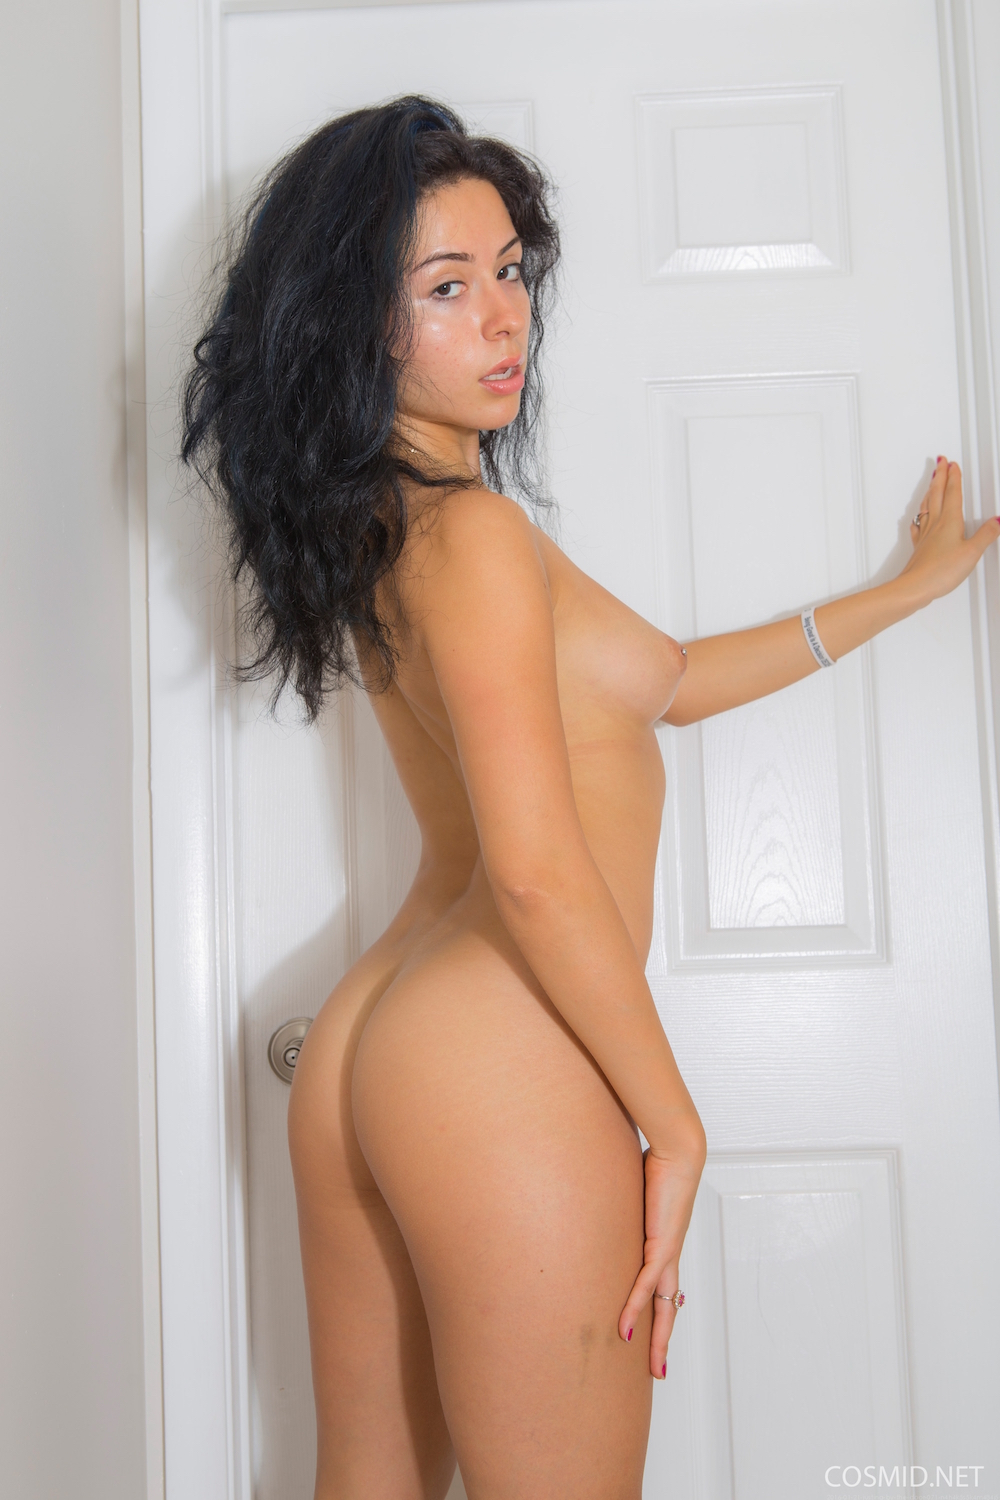 check out the rest of my site for even more cosmid justina butt